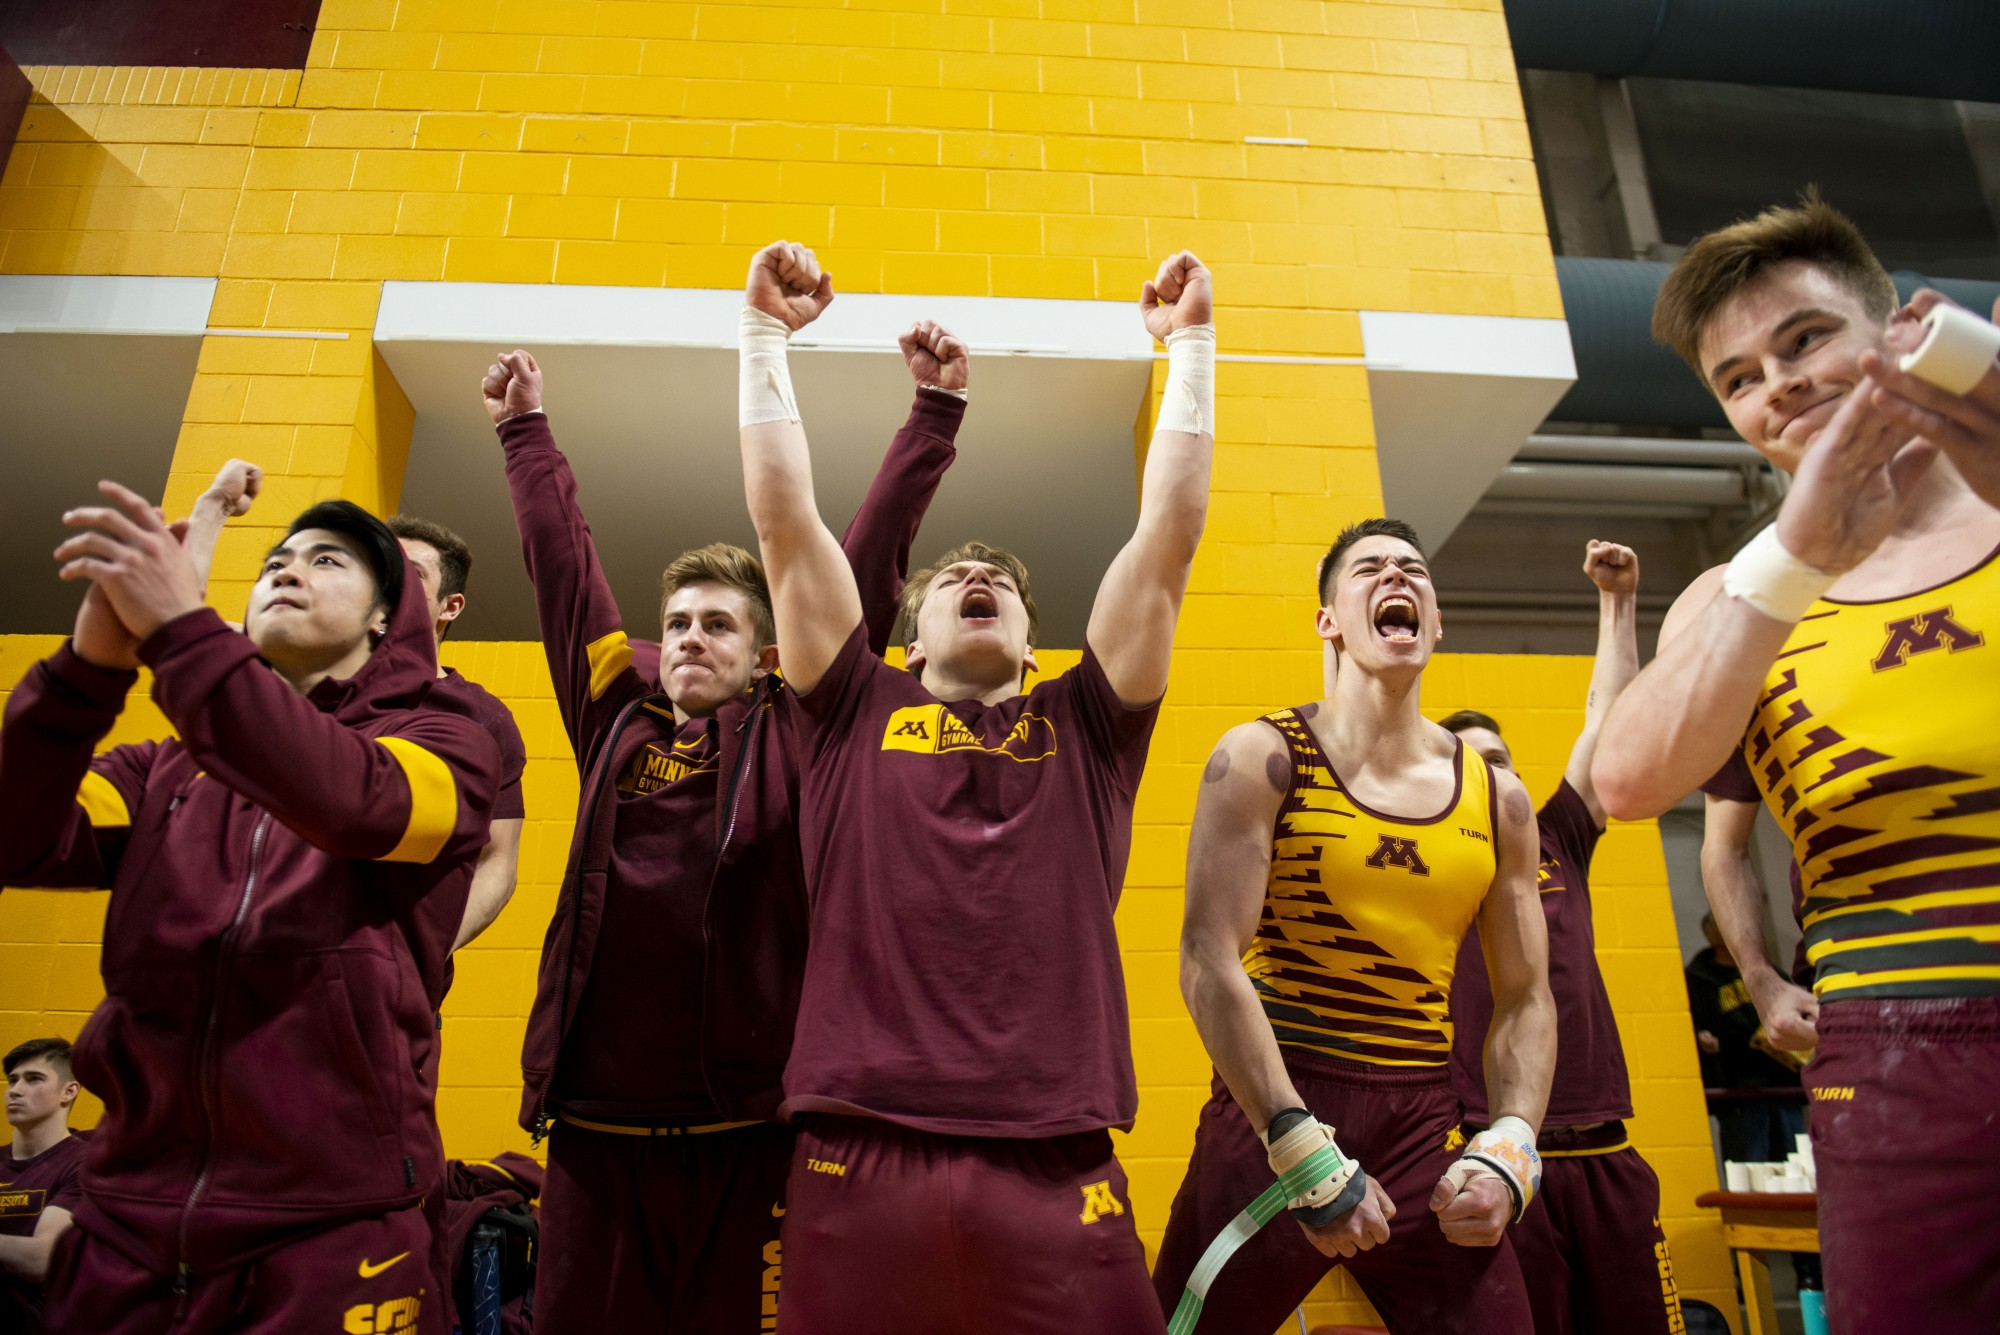 The Gophers cheer for a teammate during their meet against the Fighting Illini at the Maturi Pavilion on Friday, Jan. 24.